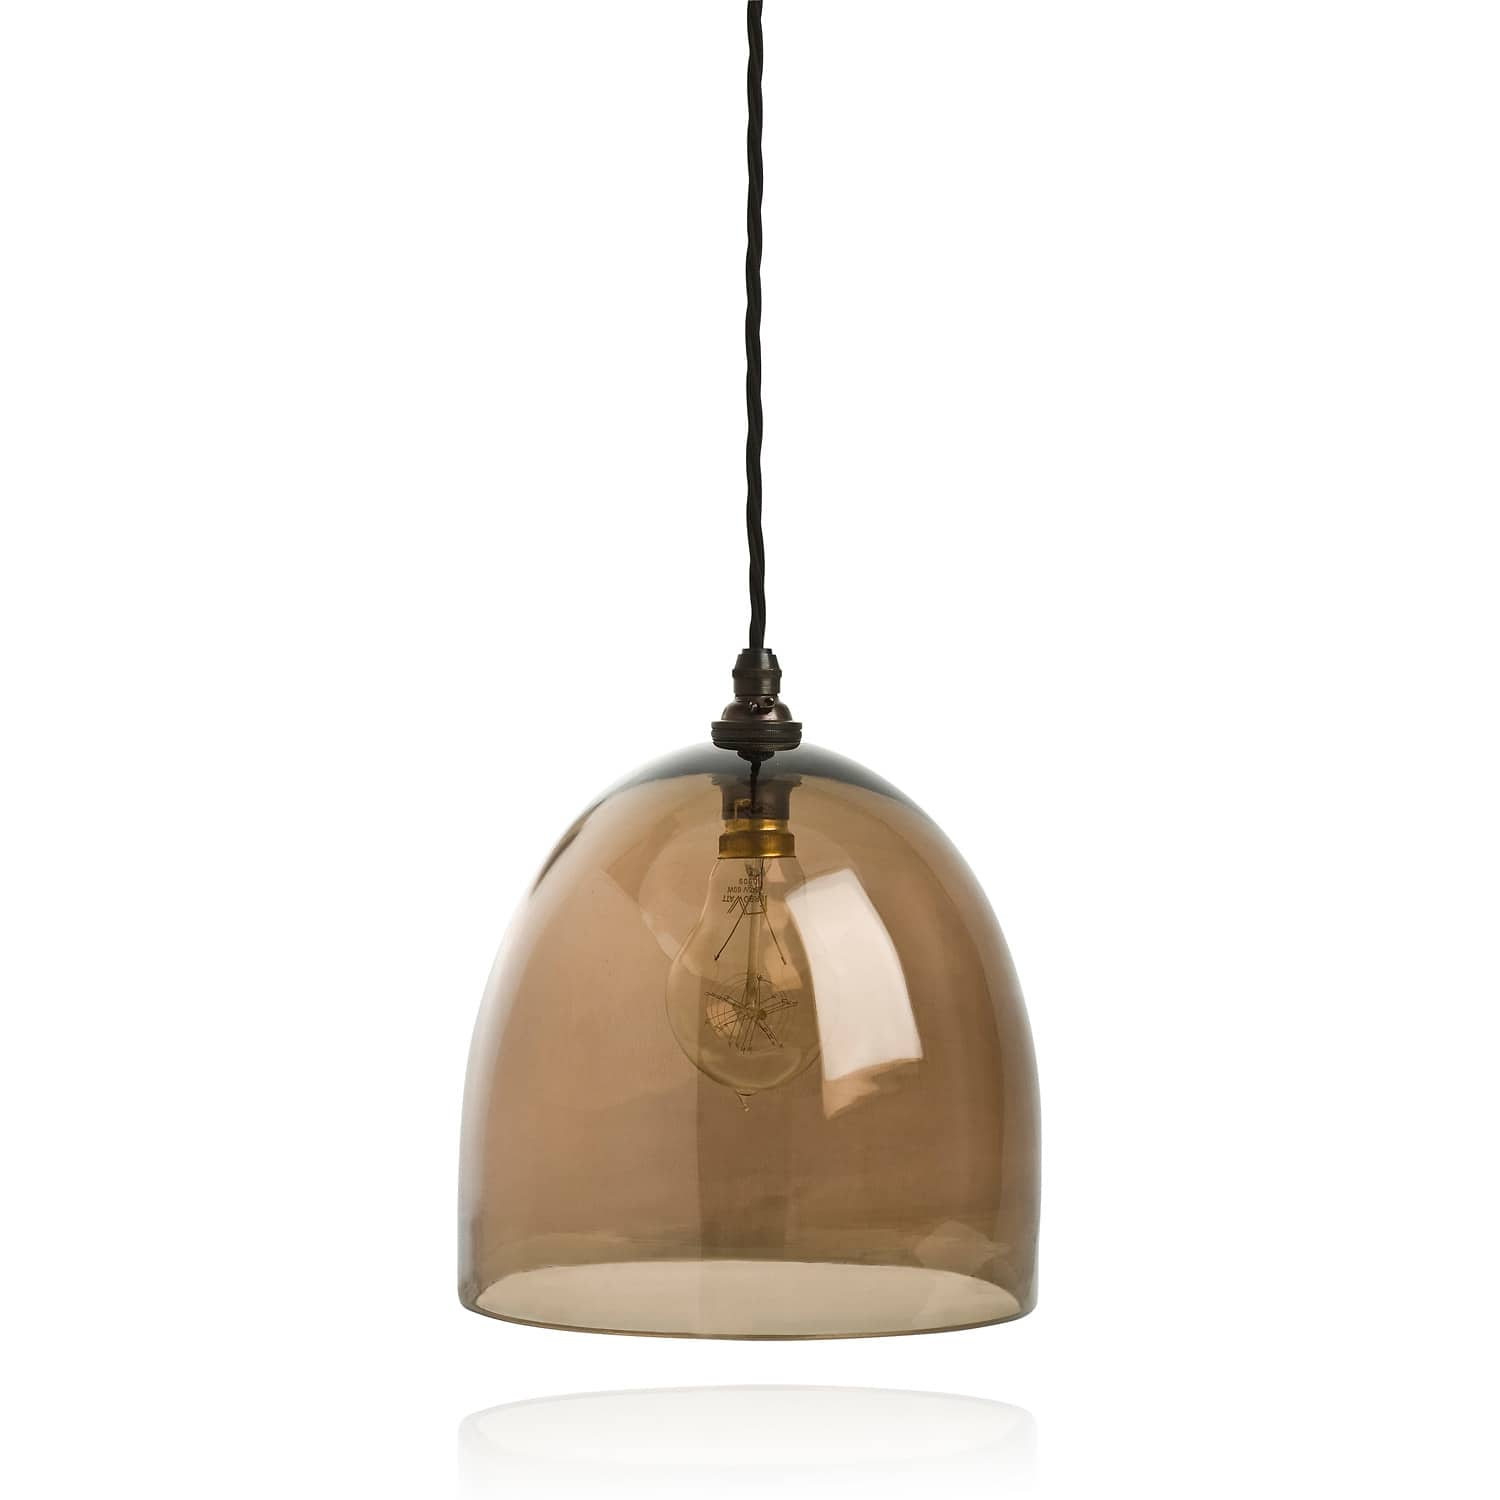 Glass Lamp Bowl Bowl Shape Pendant Lamp By Curiousa Curiousa